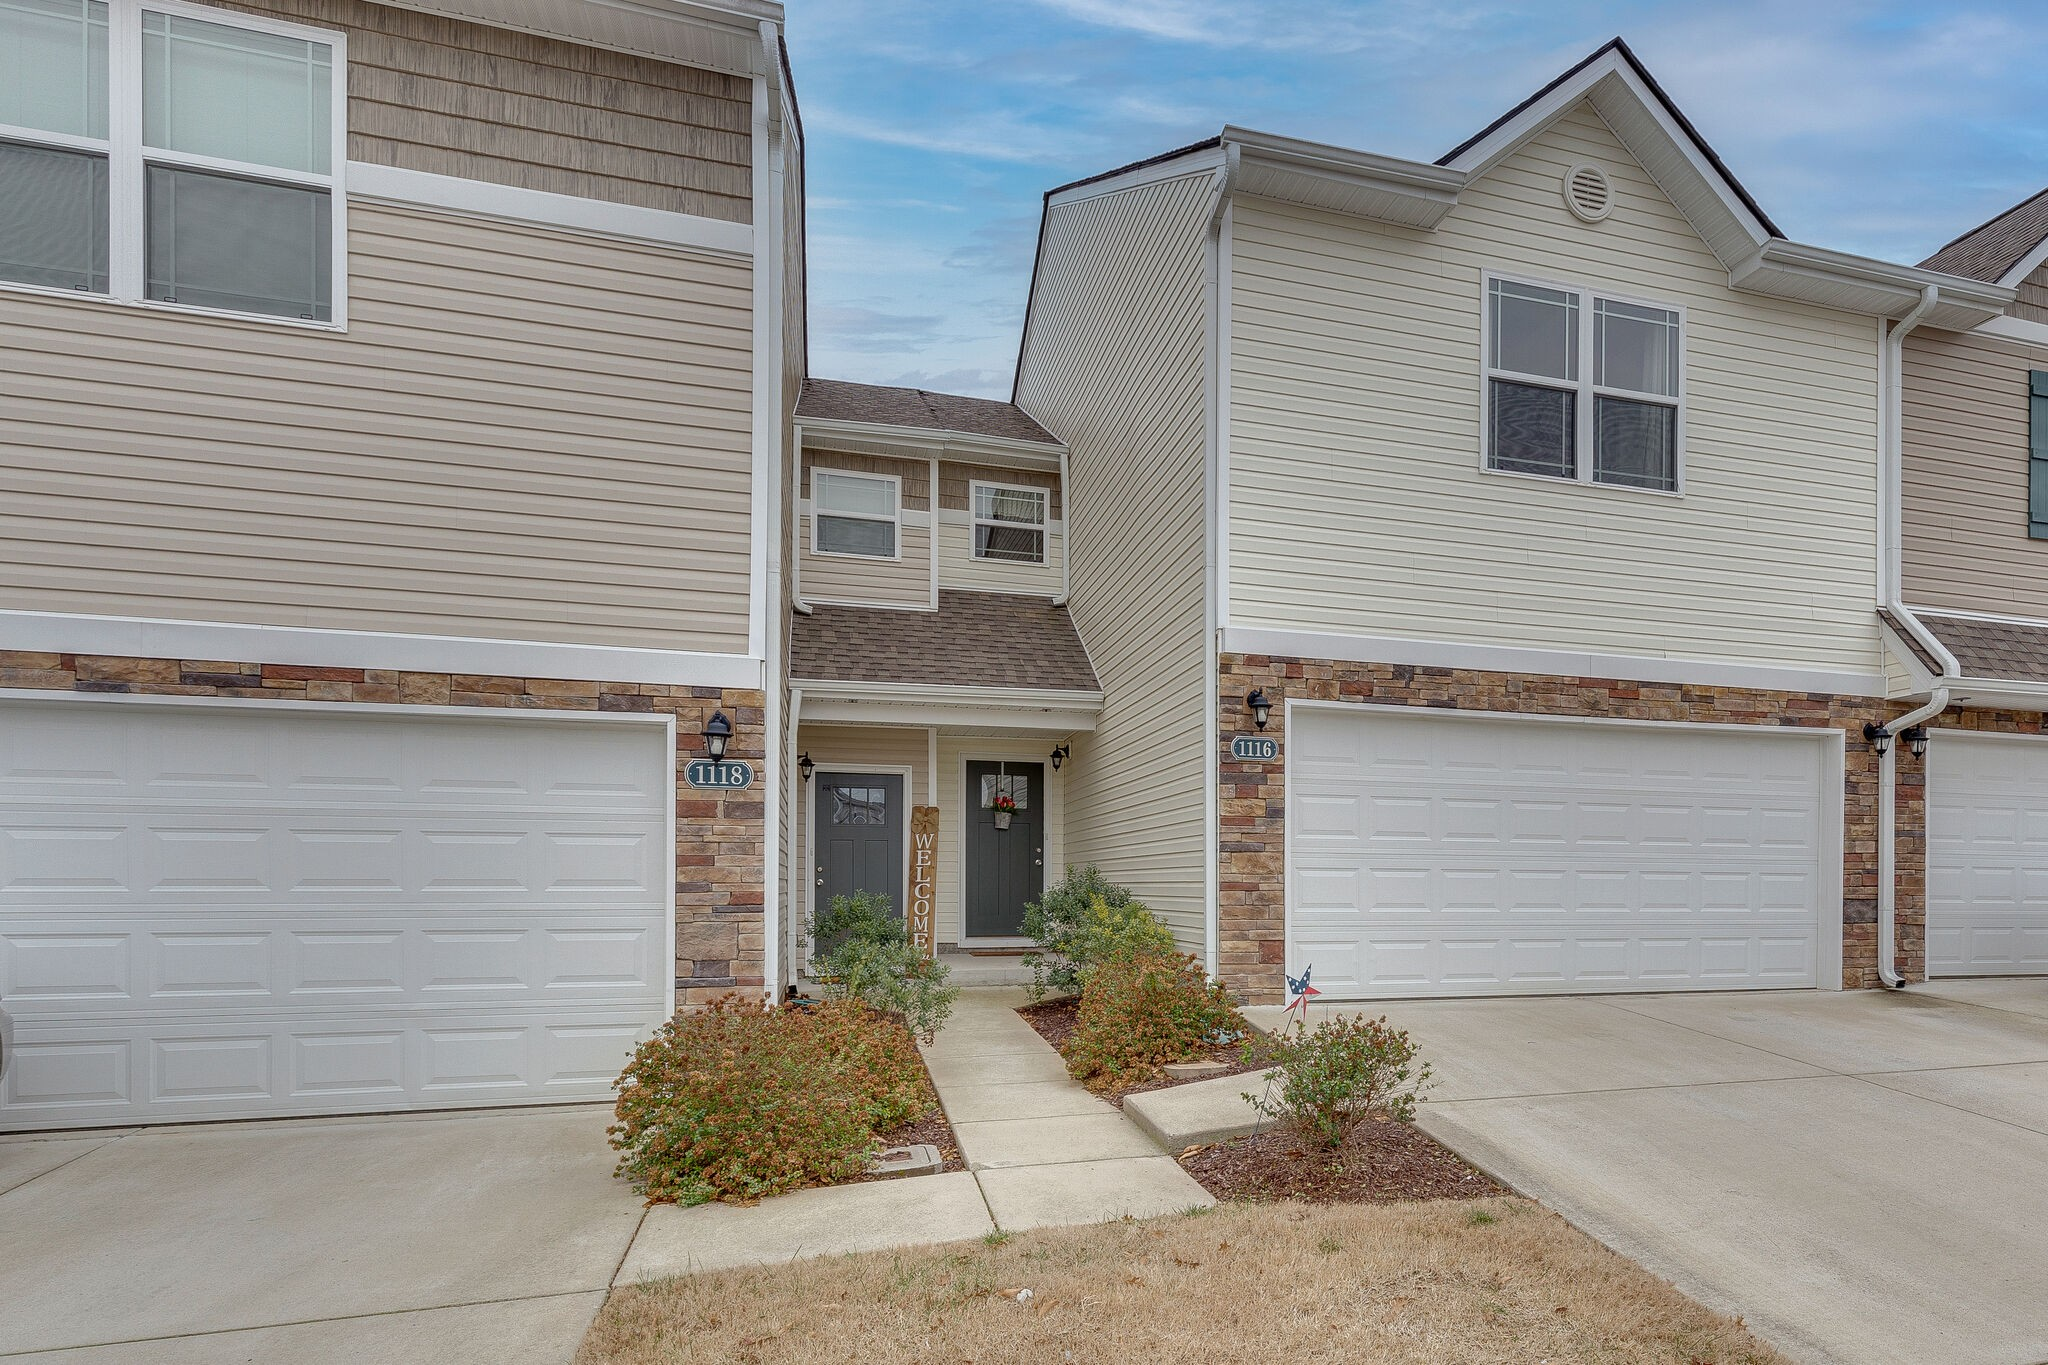 Move in Ready!! Beautiful 3 bdrm - 2.5 bath - 2 Car Garage - Outdoor Patio with Lots Of Common Area In Back. NEW Vinyl Flooring on Main Level.  Featuring An Open Floor Plan, Granite, Stainless Appliances & NEW Back Splash. Fresh Paint, New Light Fixtures, Loft upstairs. Master Bathroom New Barn Style Door.   Amenities Pool, Club House, Playground and Workout Room. Easy Access to Interstate, Shopping, Restaurant's & Much More.